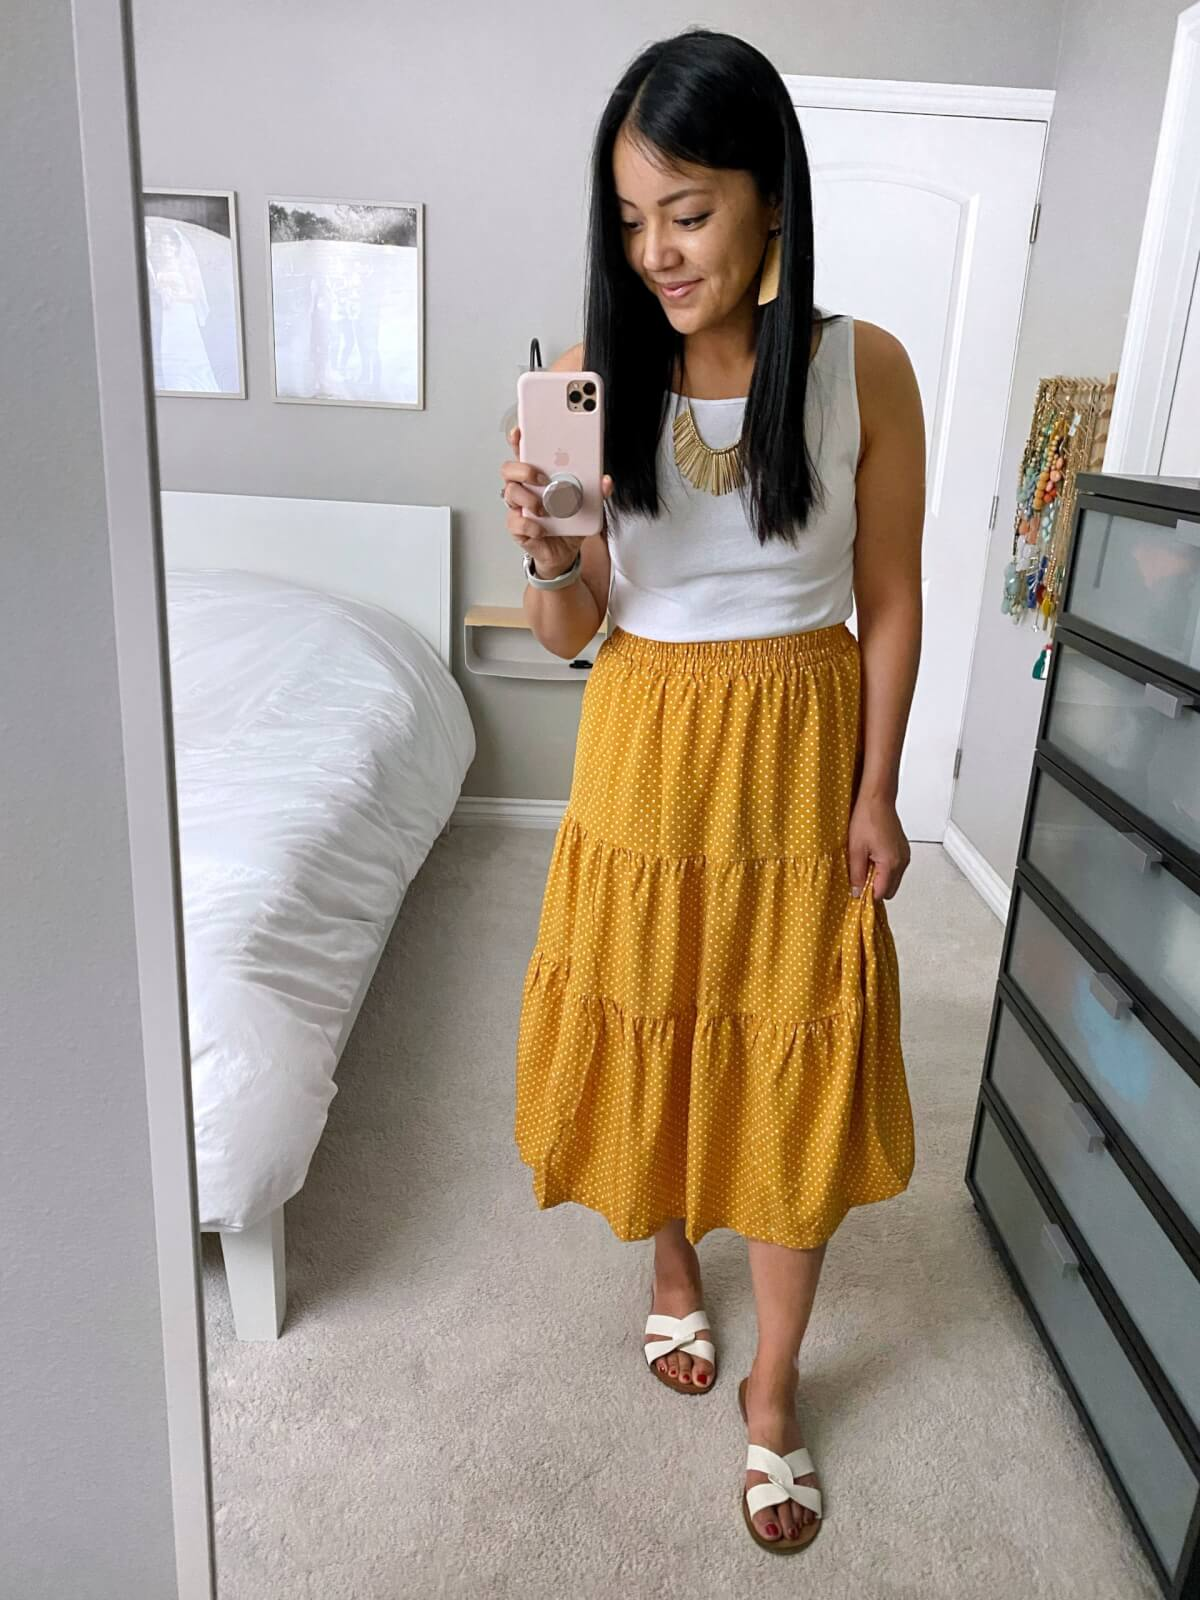 elevated casual summer outfit: white tank + yellow polka dot midi skirt + white slide sandals + gold earrings + gold bib necklace